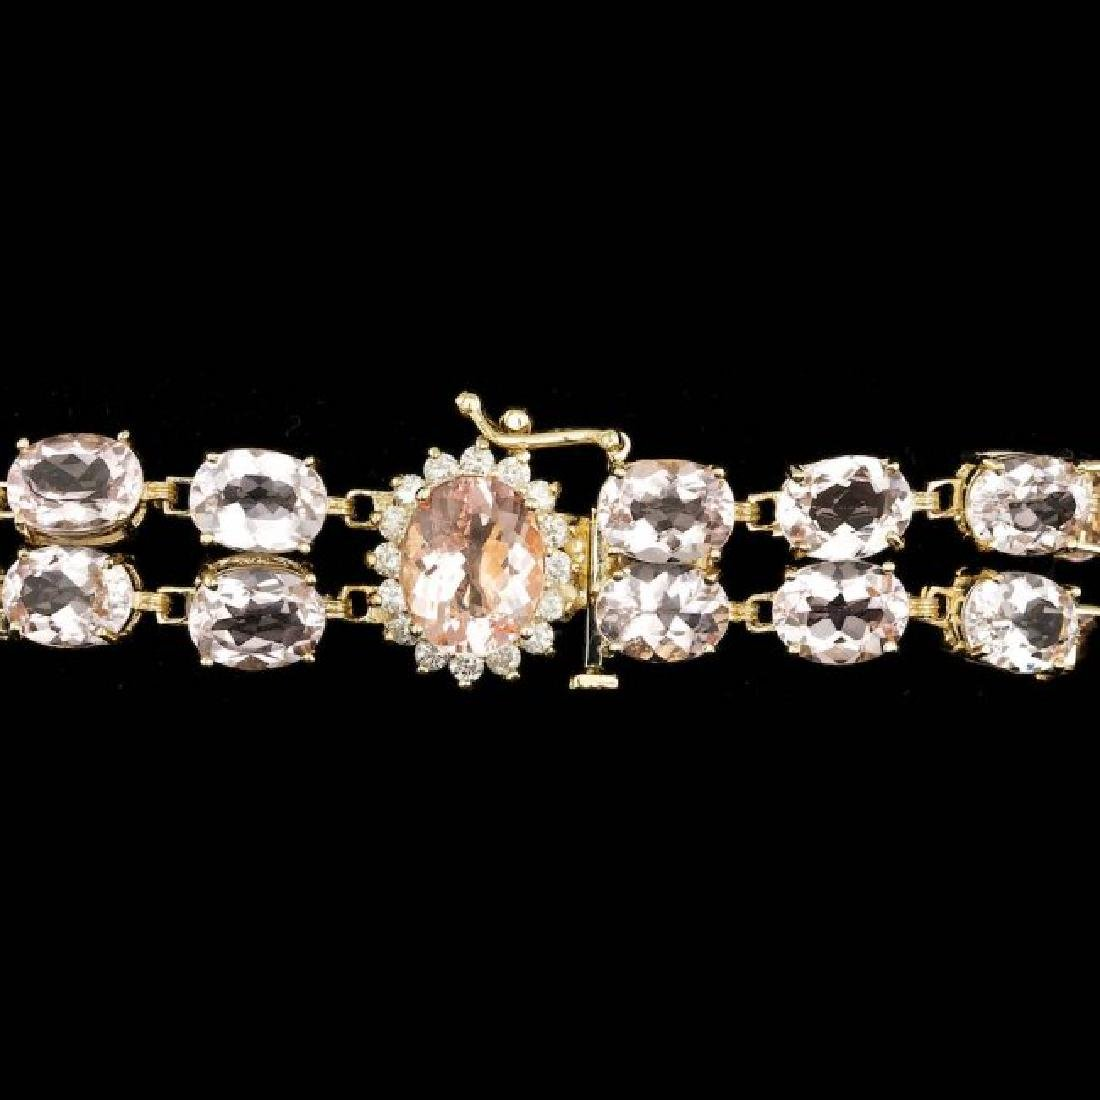 14k Gold 41.5ct Morganite 0.60ct Diamond Bracelet